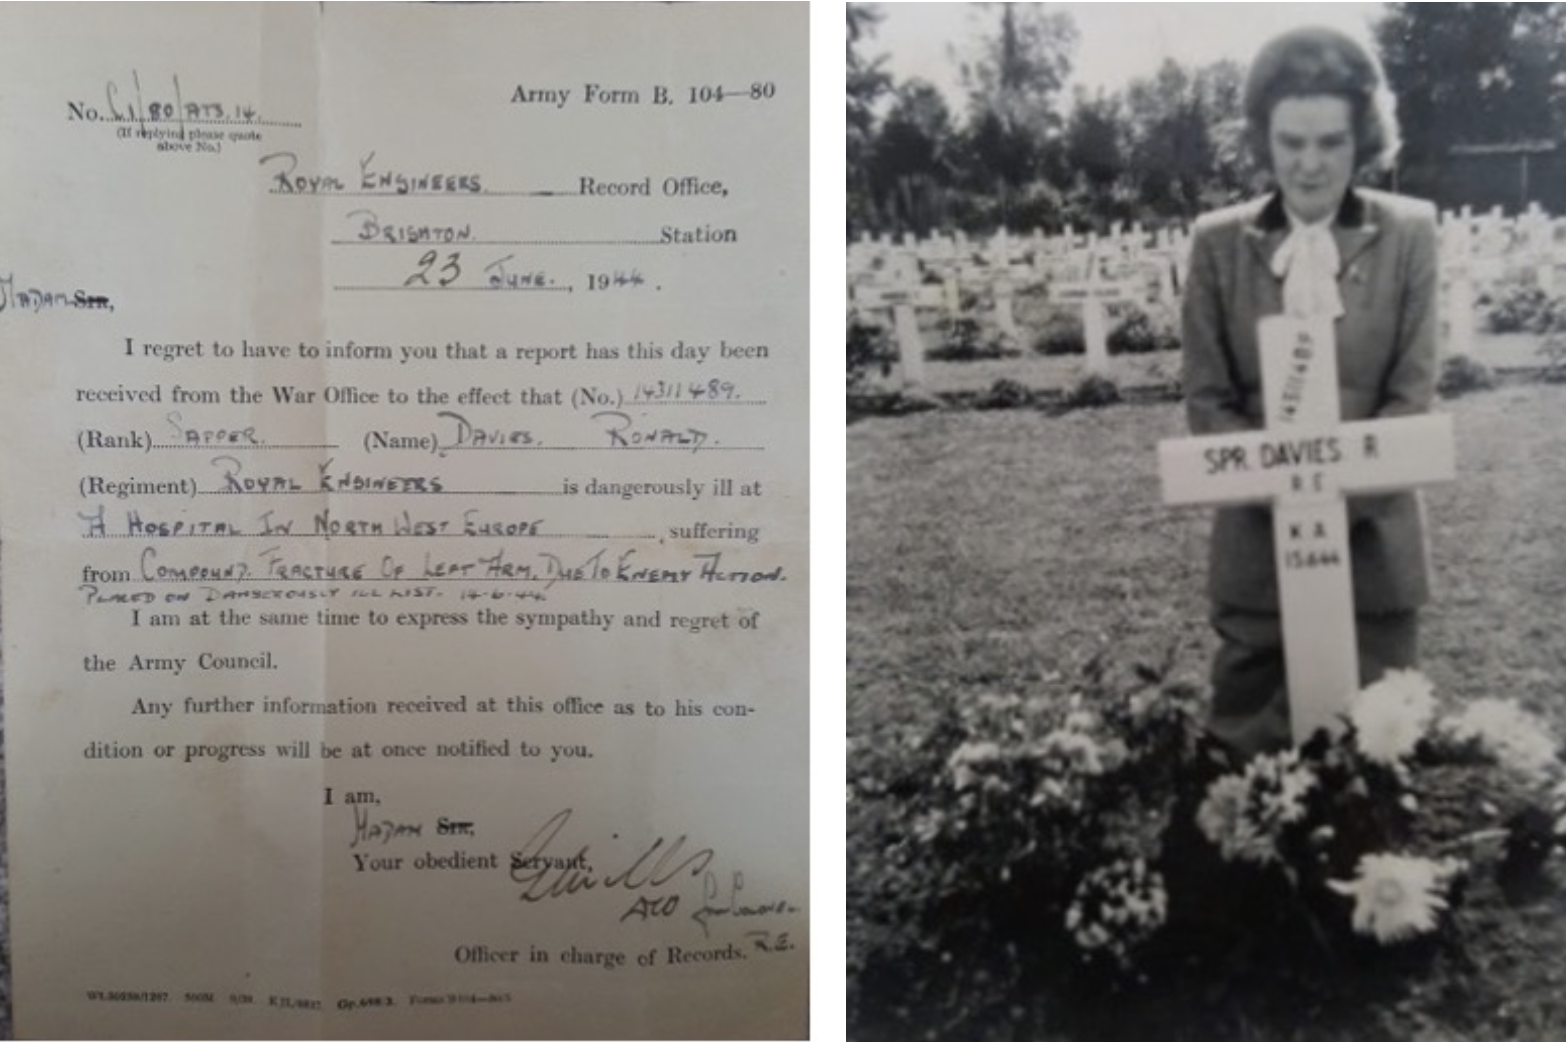 Two pictures - notice from War Office to inform that Ronald is gravely ill, and Ronald's wife Alice visiting Ronald's grave.